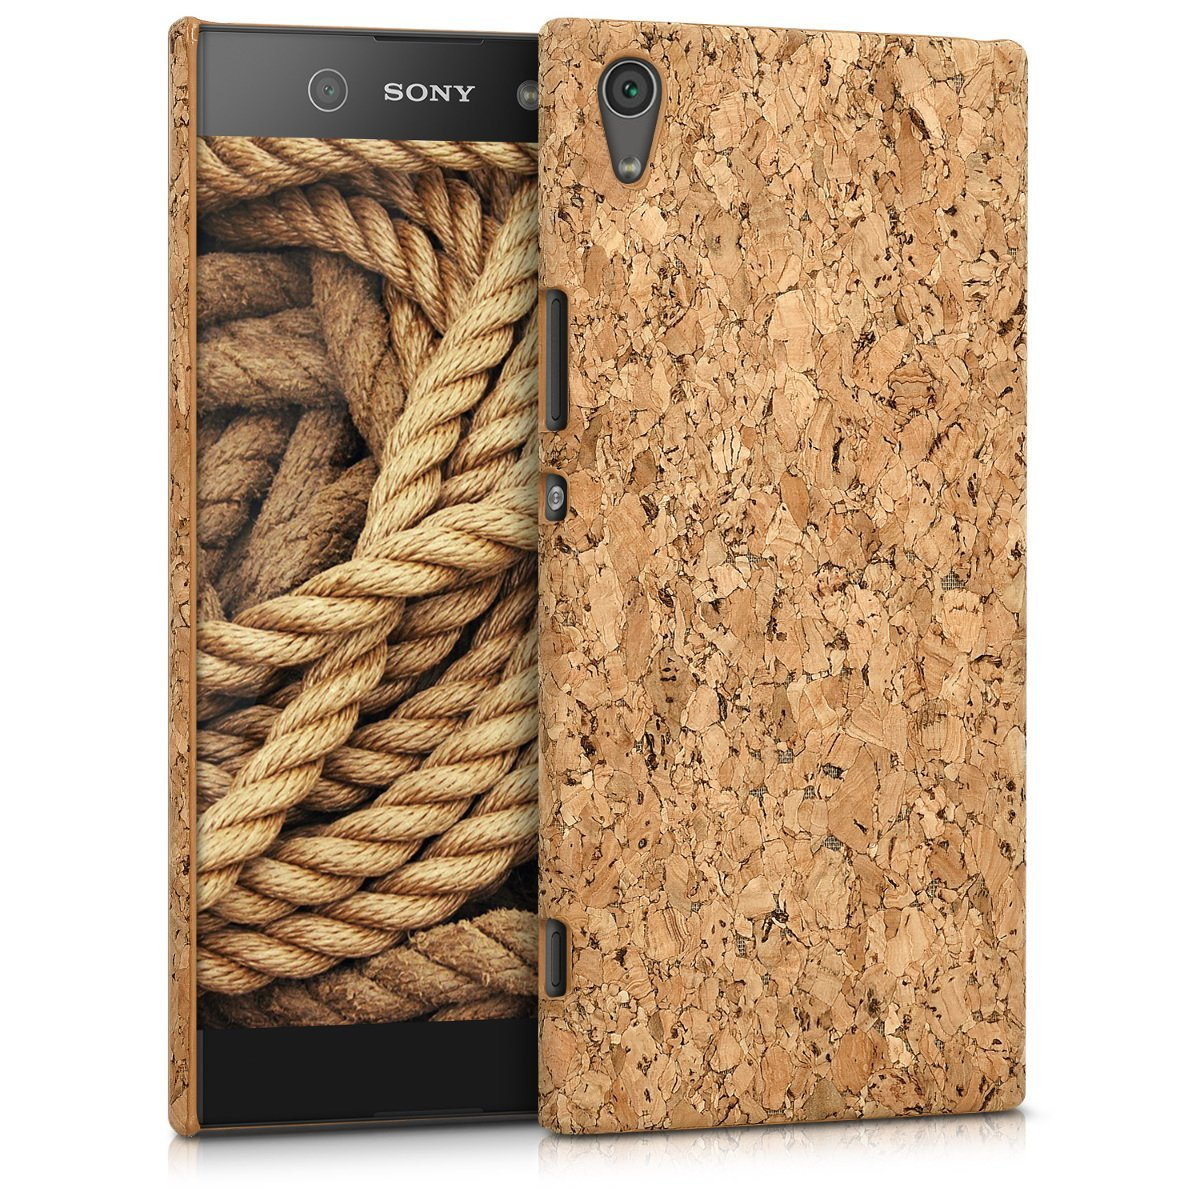 KW Σκληρή Θήκη Sony Xperia XA1 Ultra - Light Brown Cork (42642.24)